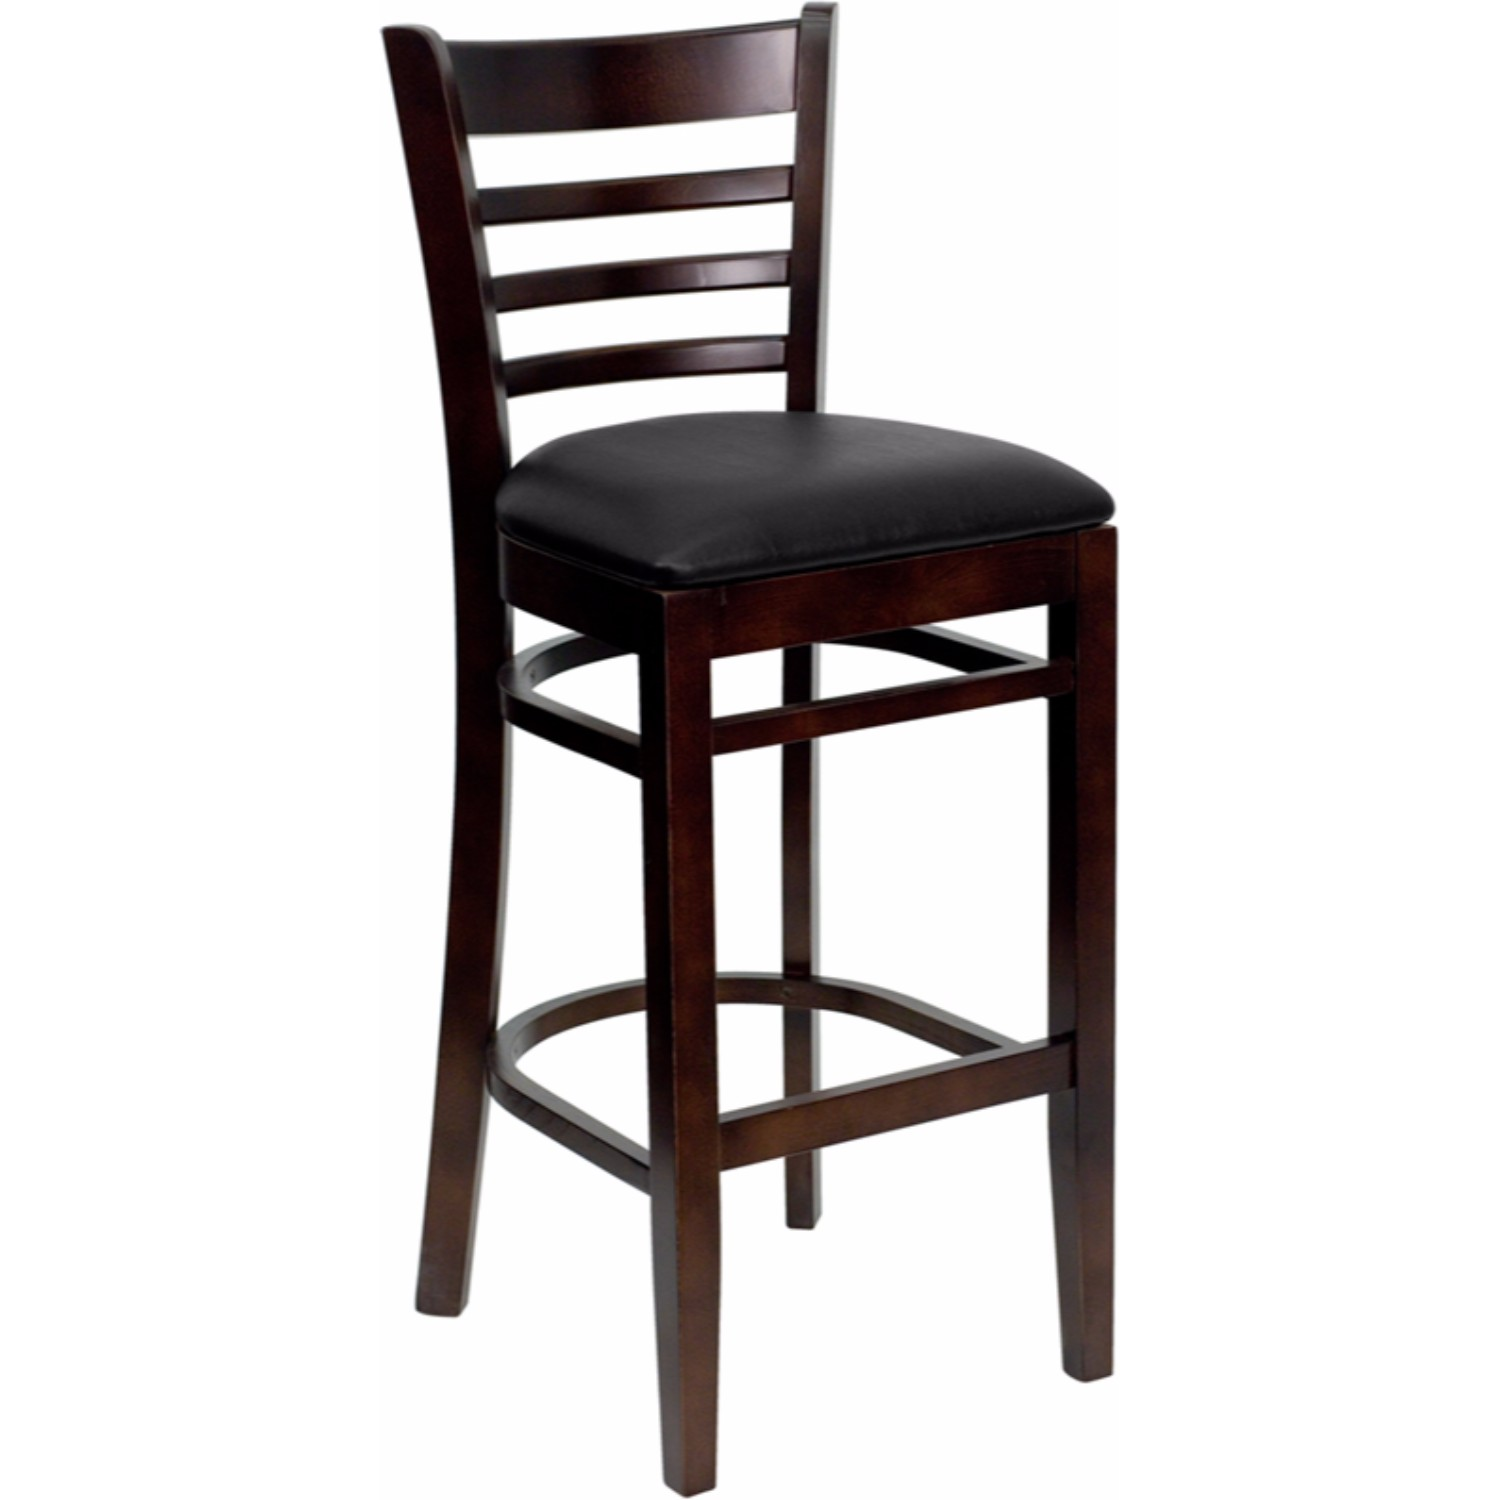 Offex HERCULES Series Walnut Finished Ladder Back Wooden Restaurant Bar Stool Black